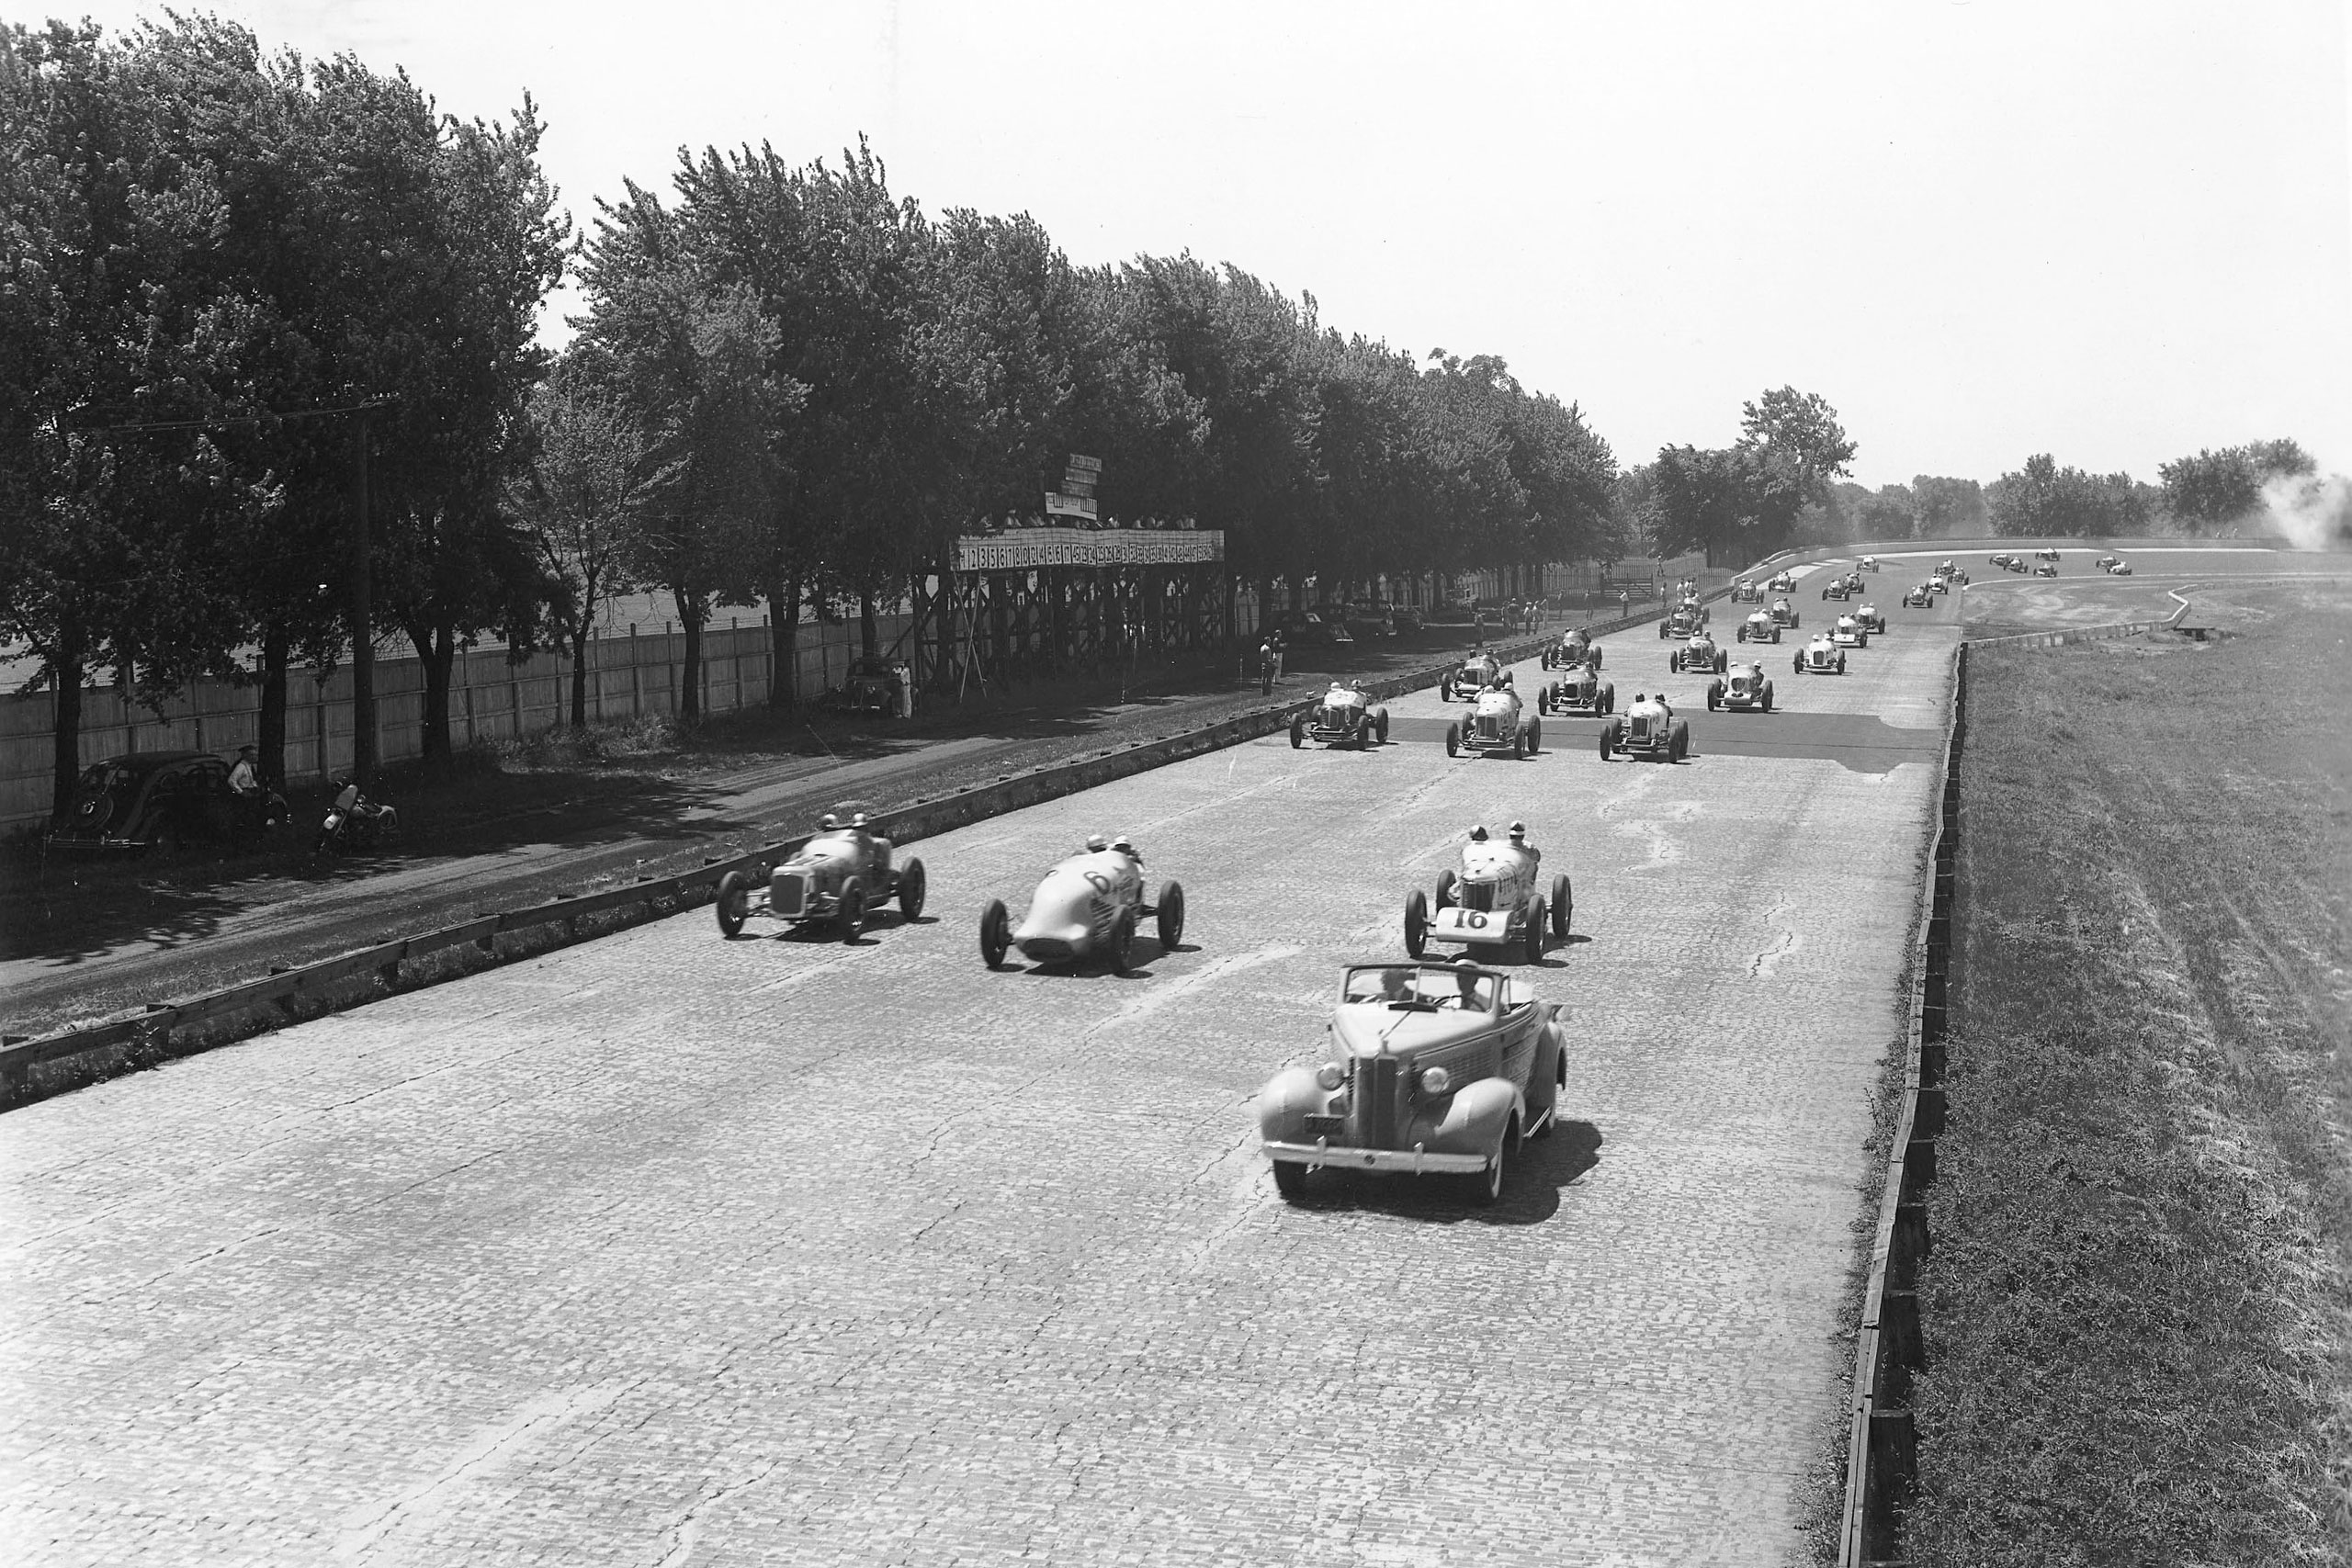 Indy Cars are shown on the brick racing surface of the Indianapolis Motor Speedway during the pace lap for the Indianapolis 500 on May 31, 1937.